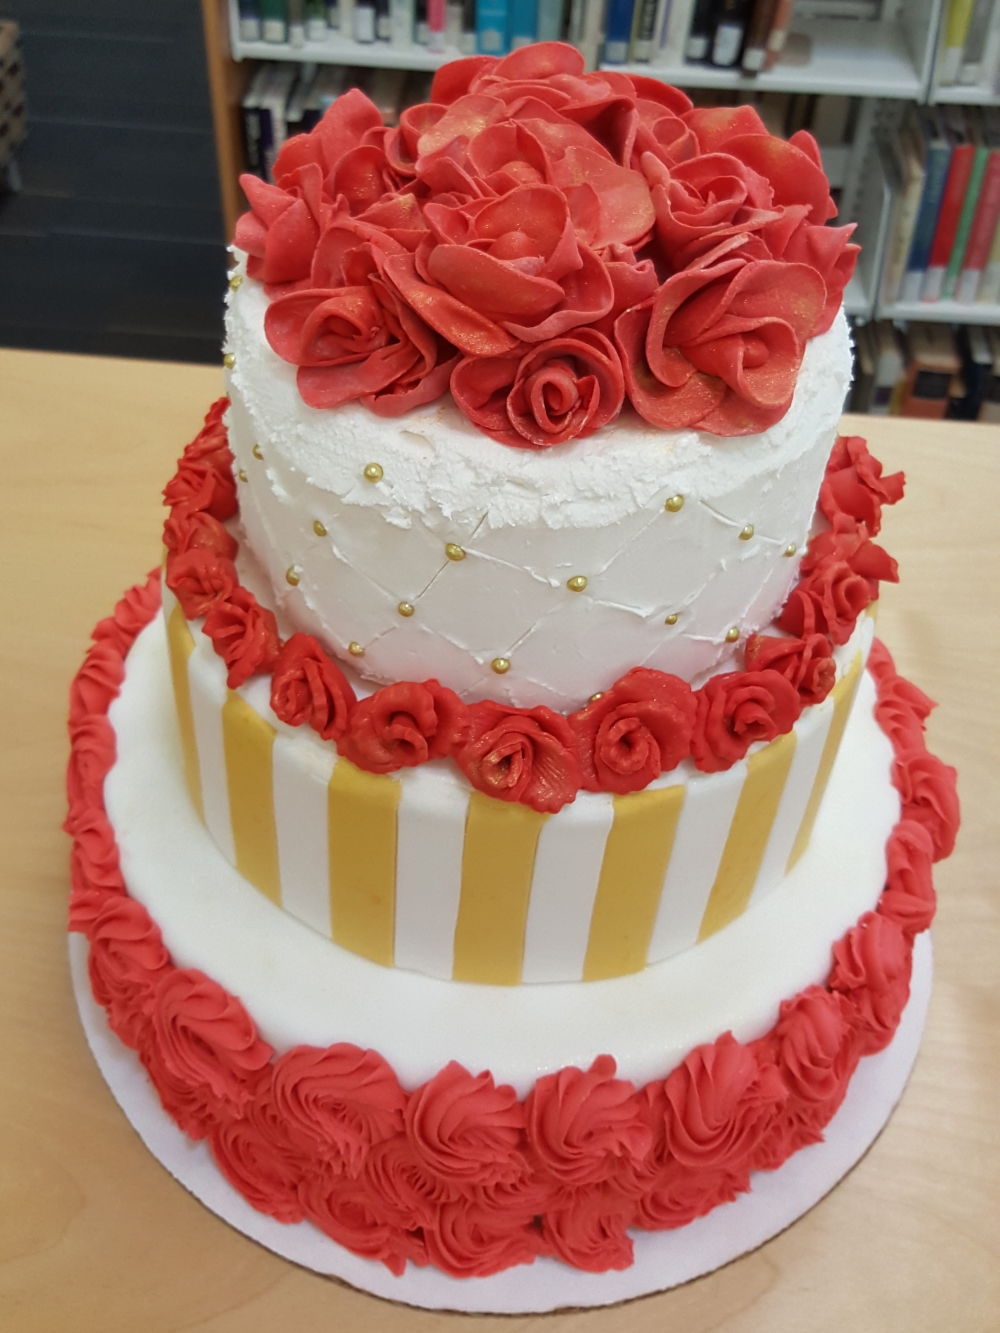 2019 Cakes Red Roses - top view